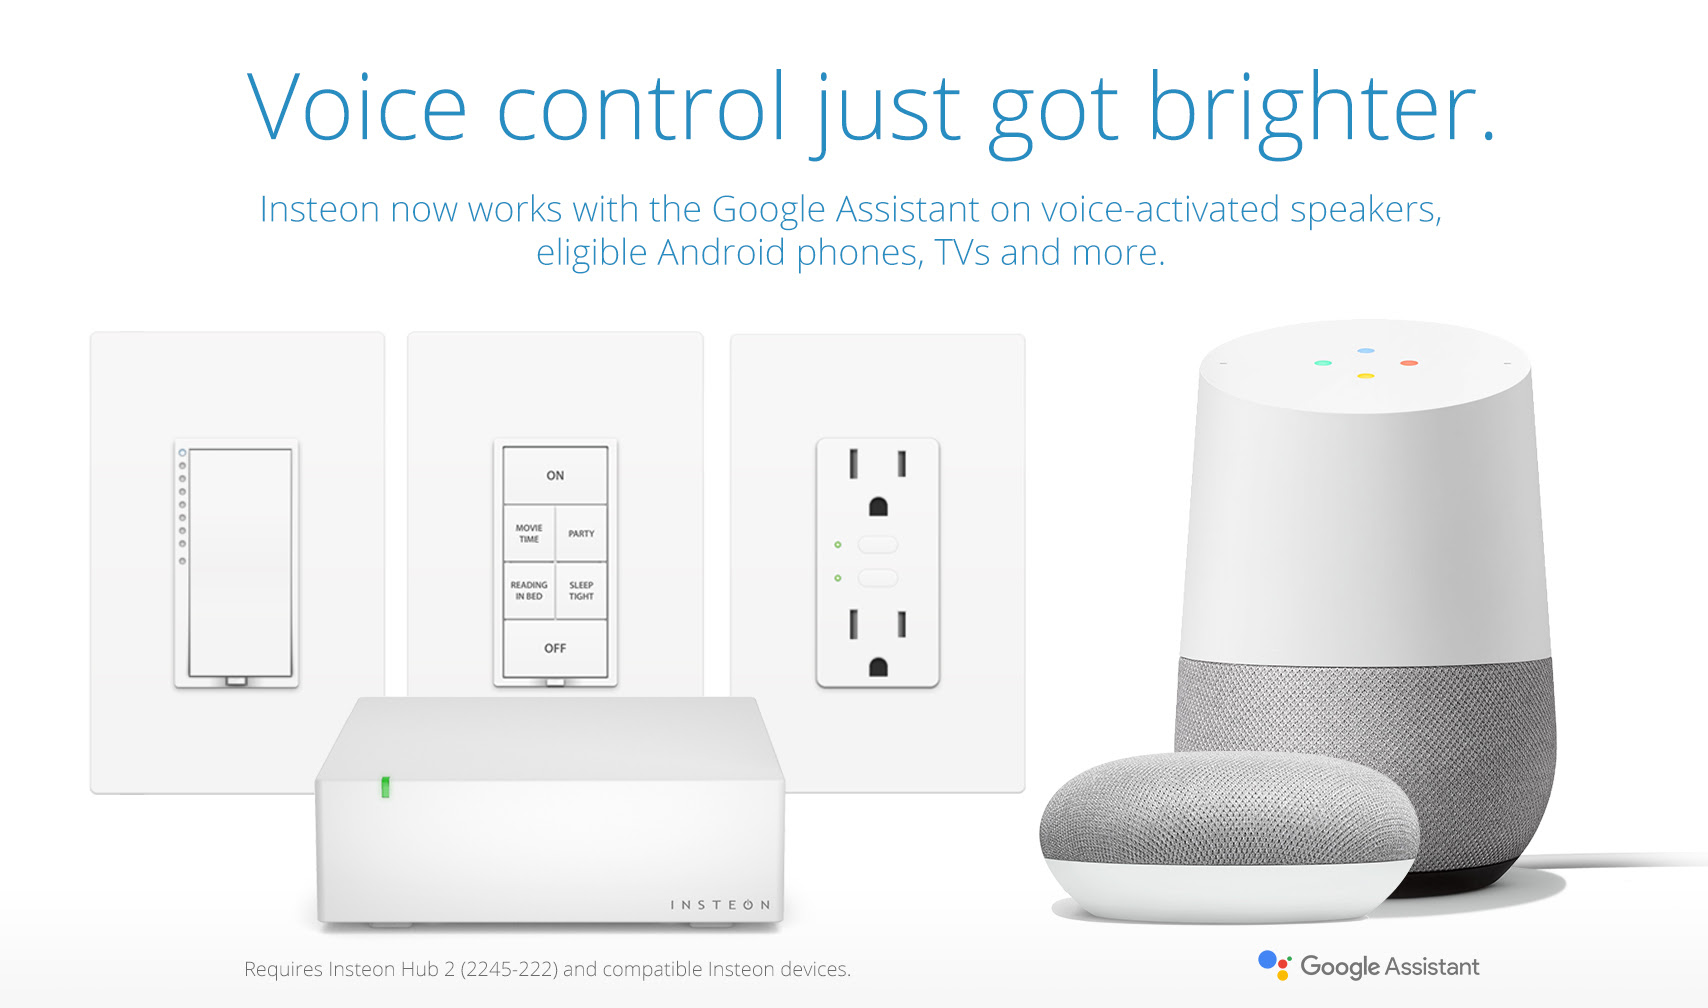 Insteon now works with Google Assistant